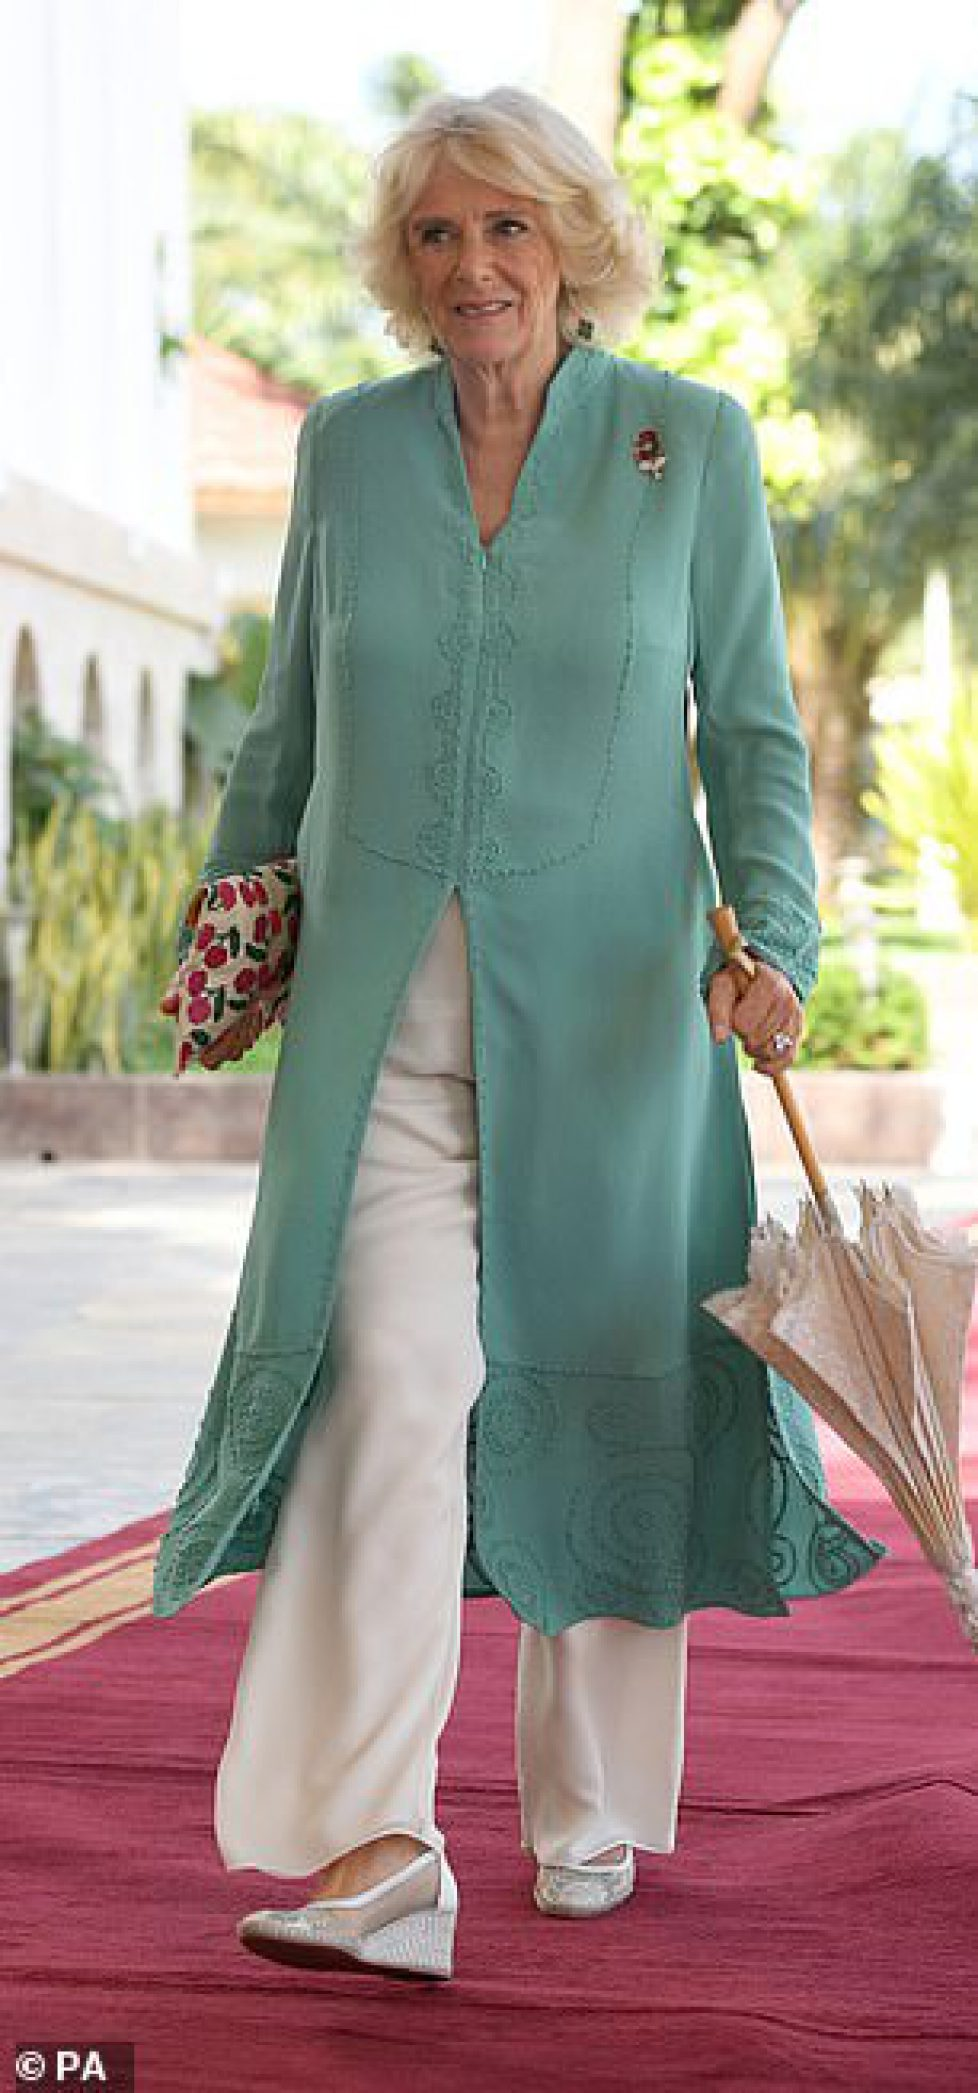 5651298-6341715-Camilla_71_looked_chic_in_a_turquoise_tunic_for_the_engagement-a-44_1541078586456